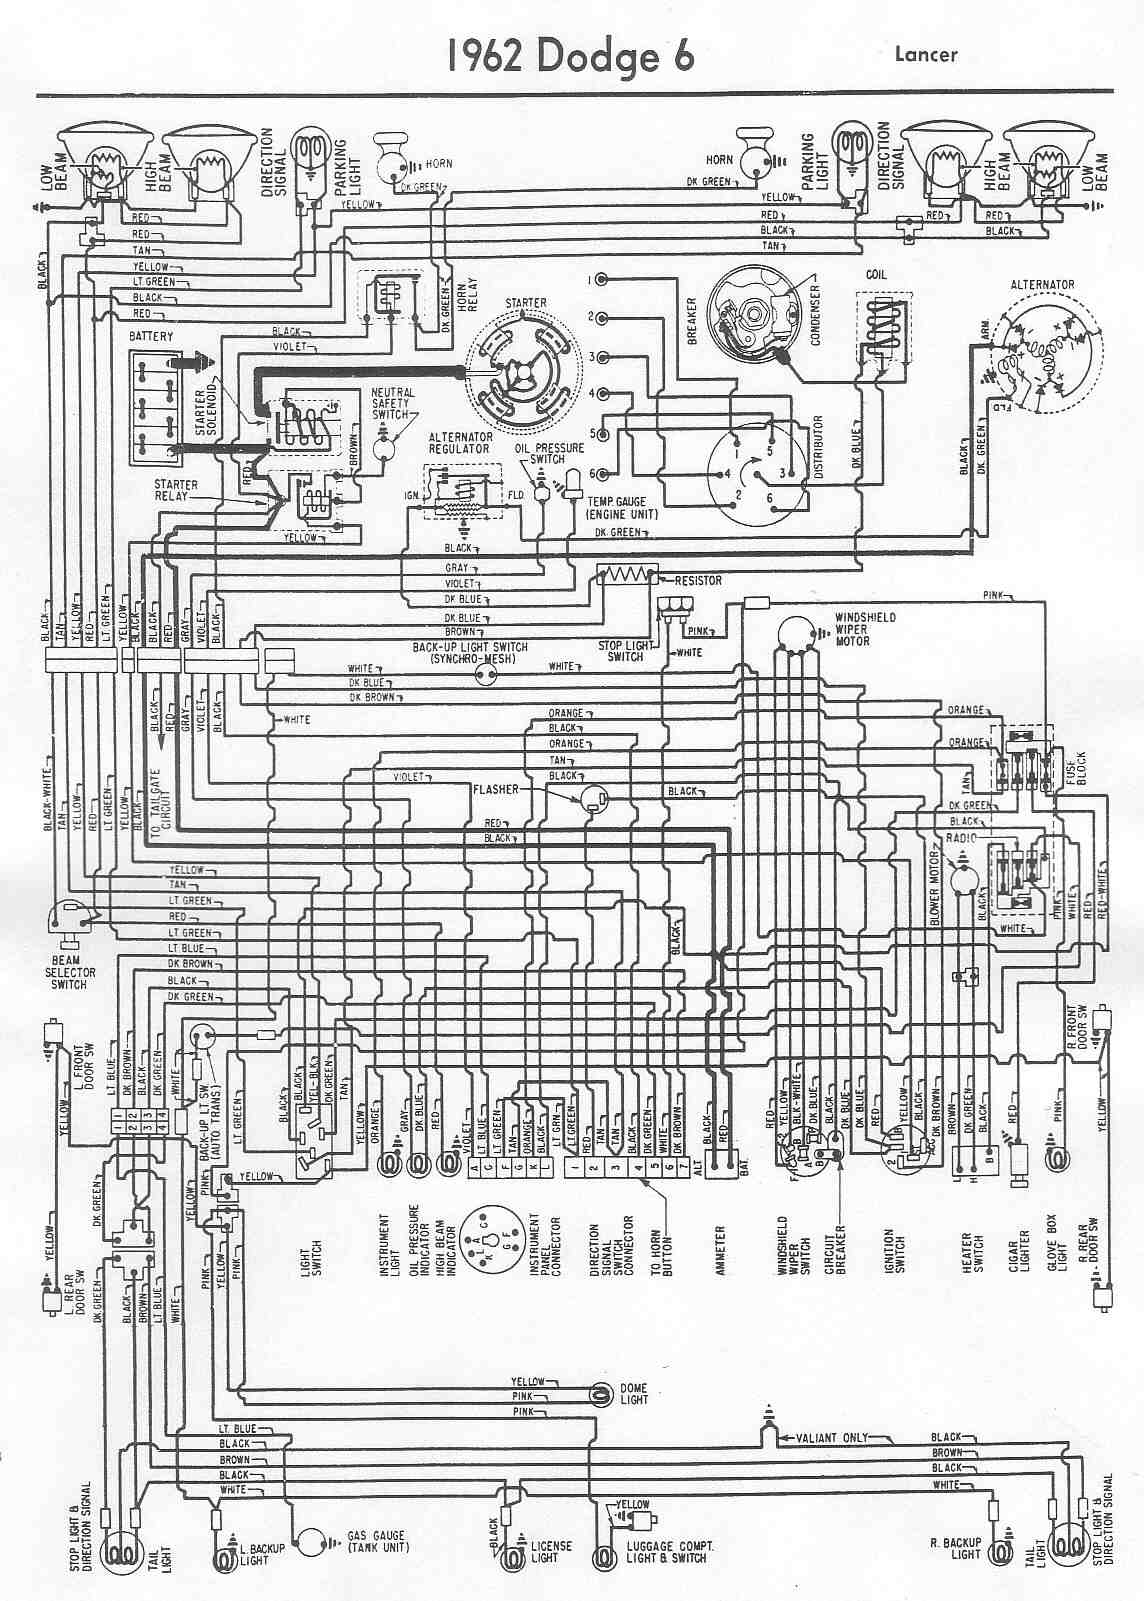 medium resolution of 67 dodge charger wiring diagram wiring library 1968 ford falcon wiring diagram 1968 dodge challenger wiring diagram